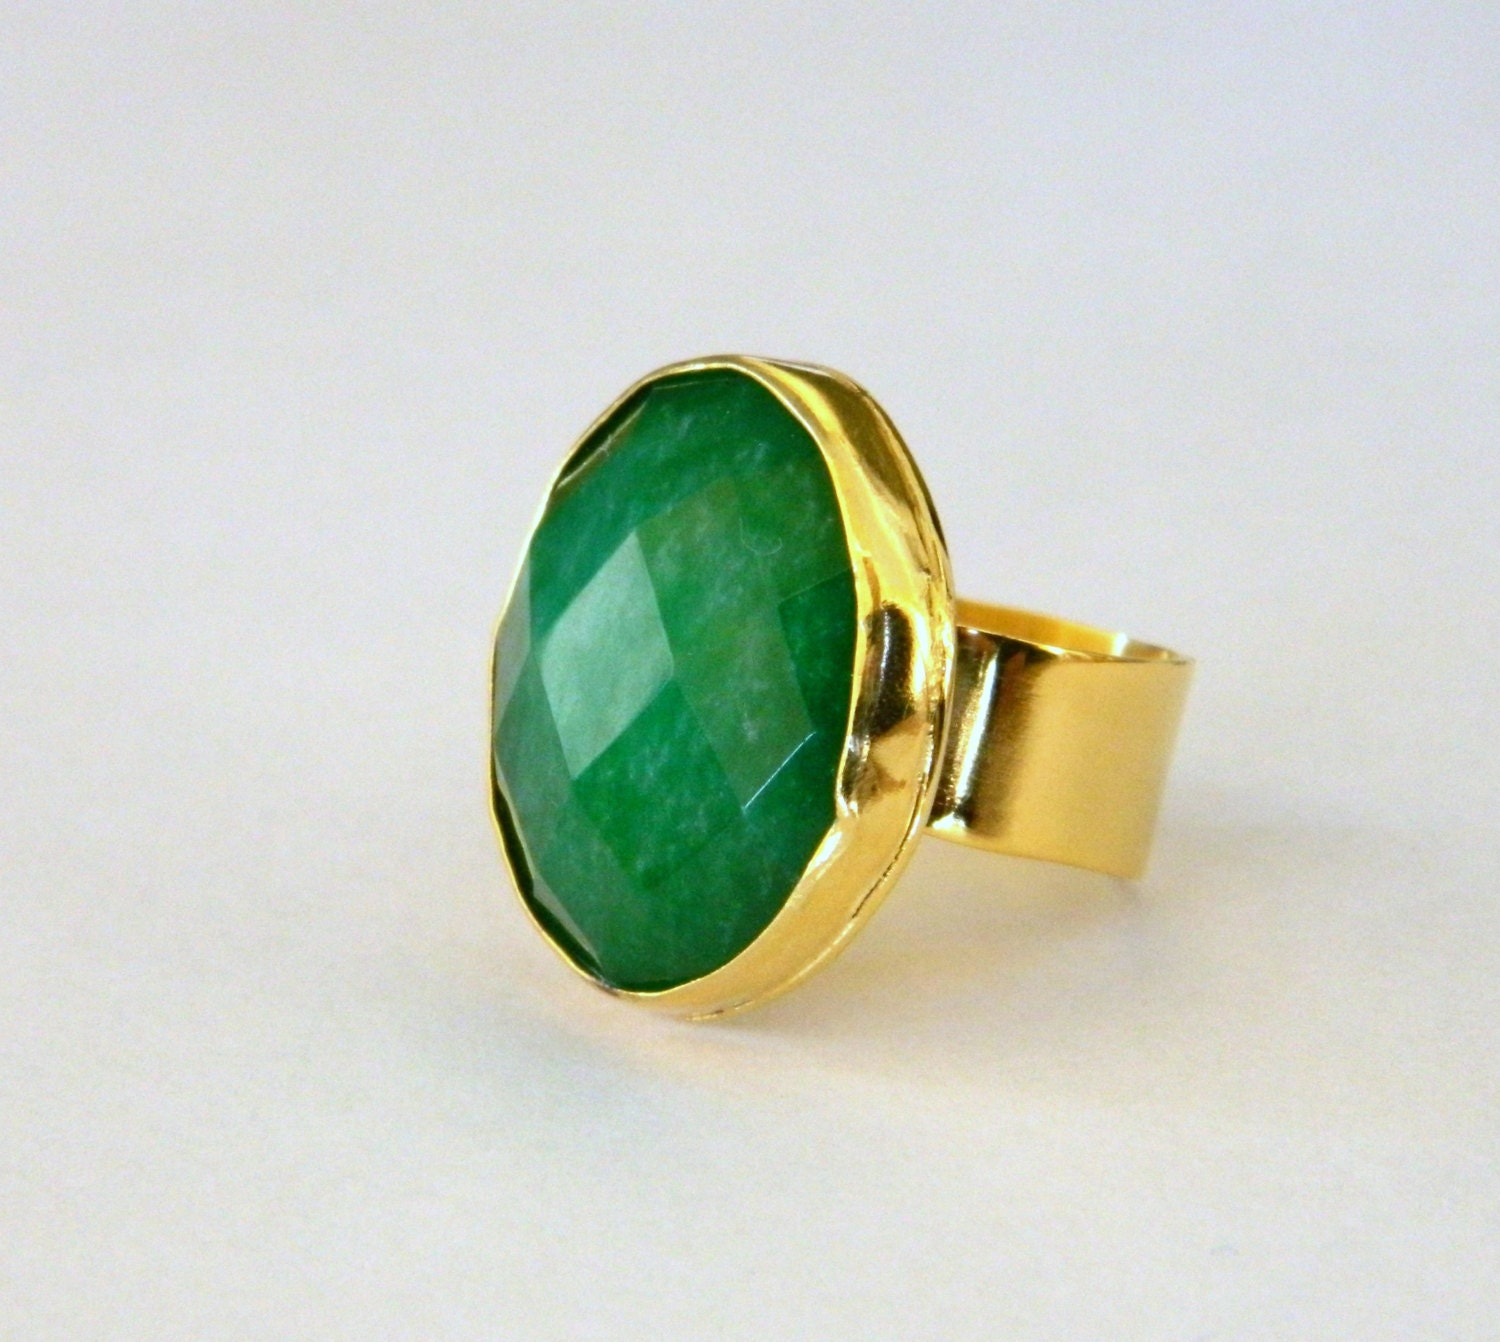 gold plated cz with ring rings gemstone green gre studded jewelry exclusive large